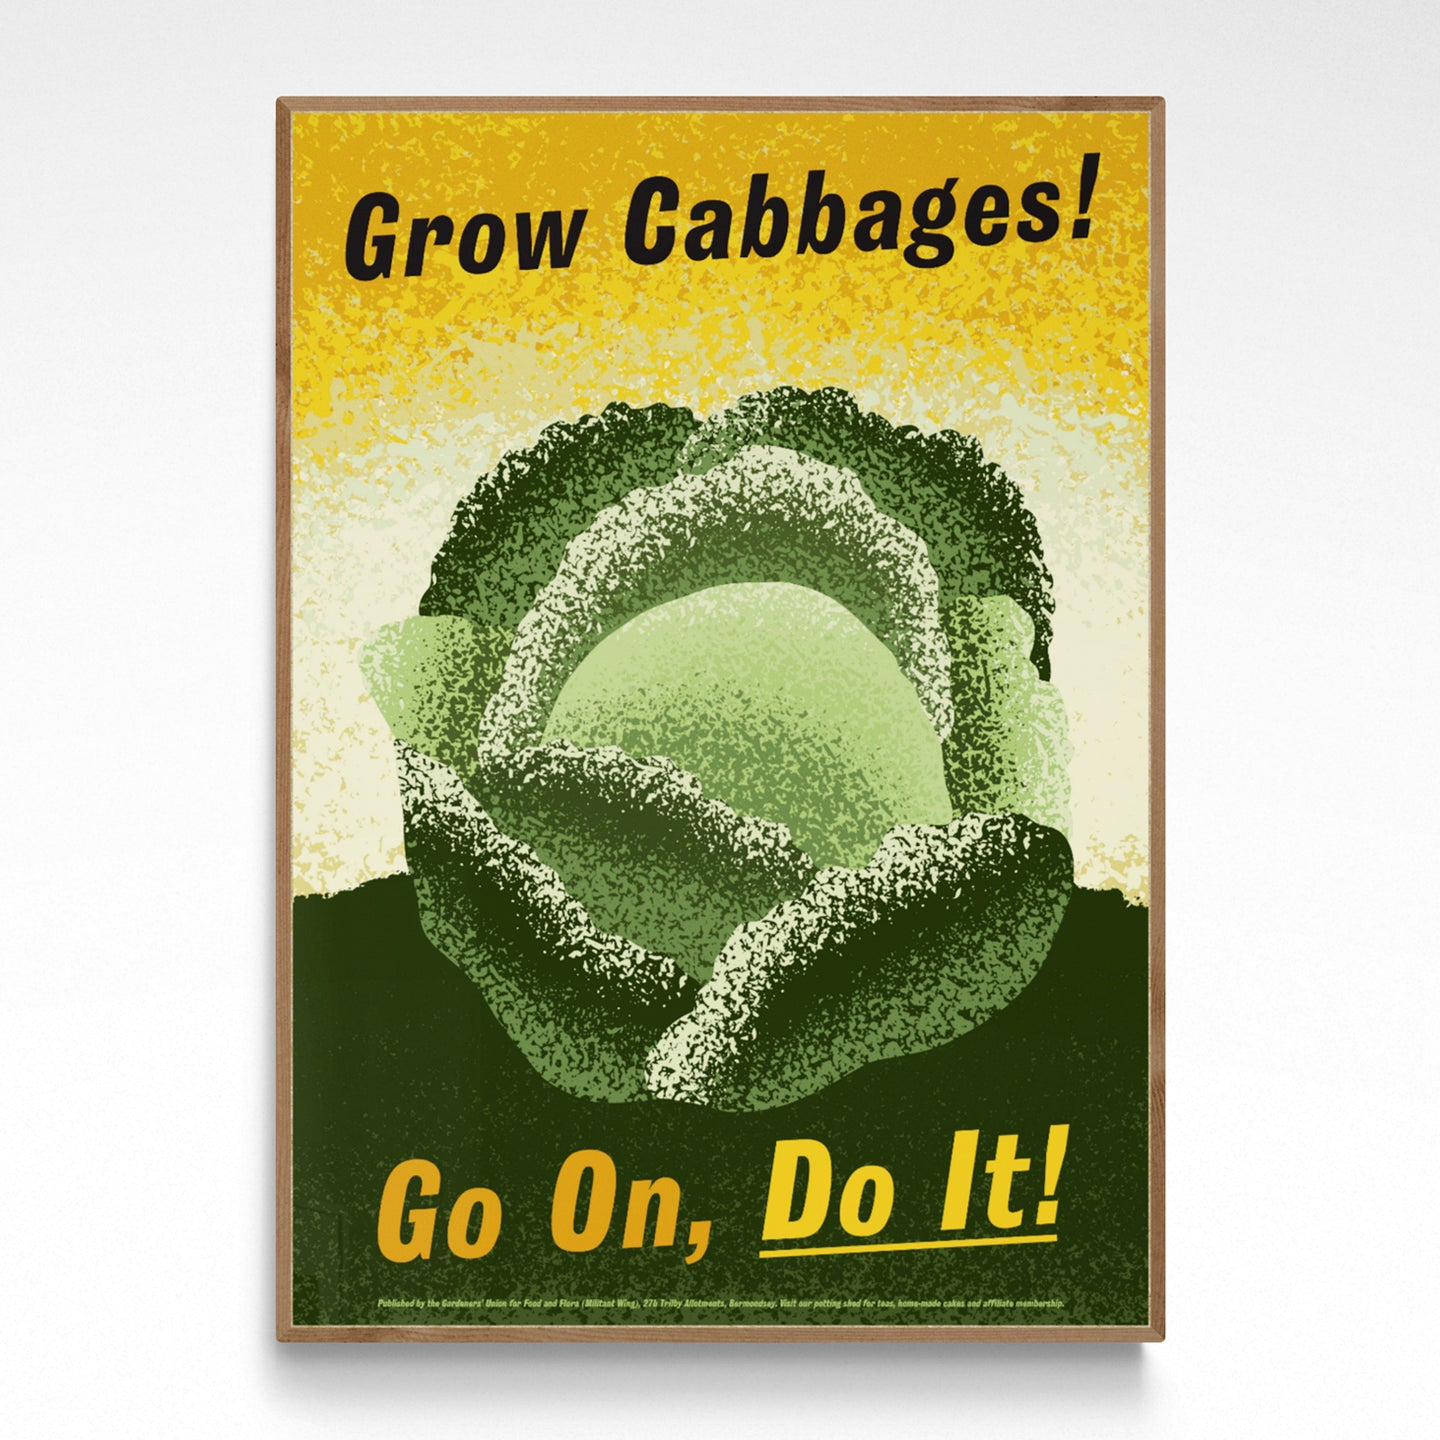 Gardening Poster - Grow Cabbages